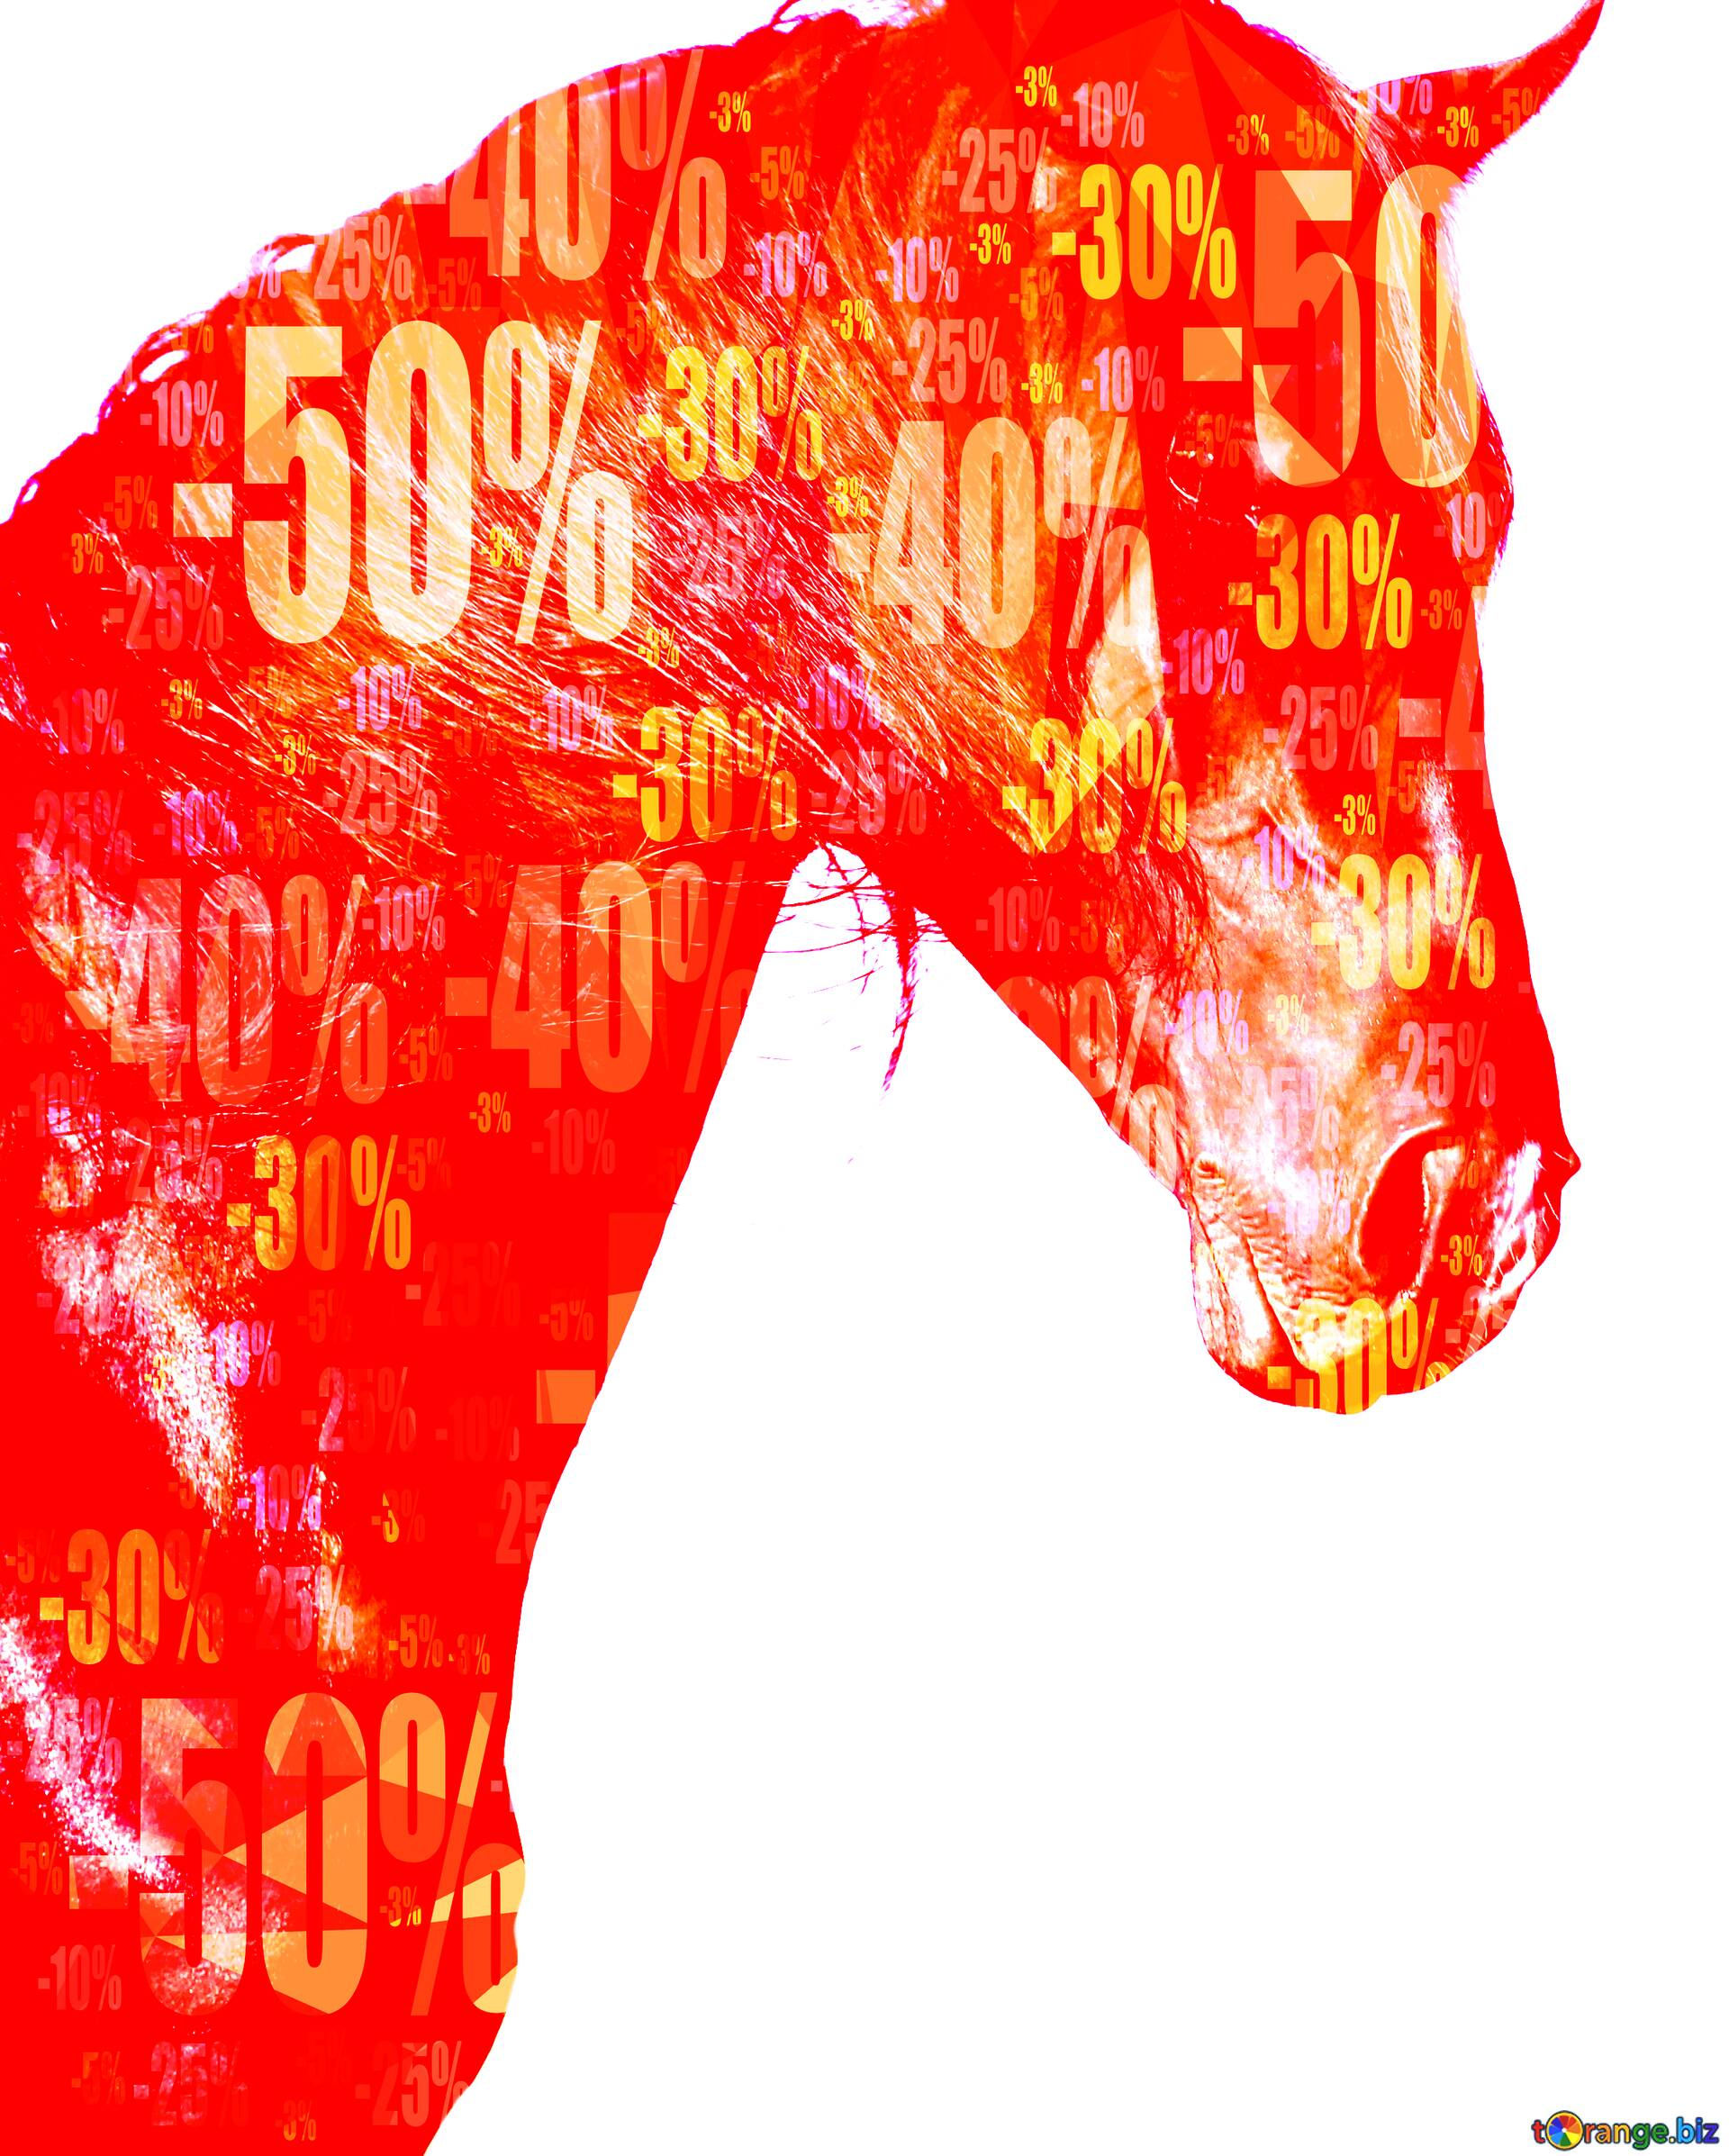 Download Free Picture Beautiful Portrait Of Horse Sale Horse Store Red Discount Background On Cc By License Free Image Stock Torange Biz Fx 204858